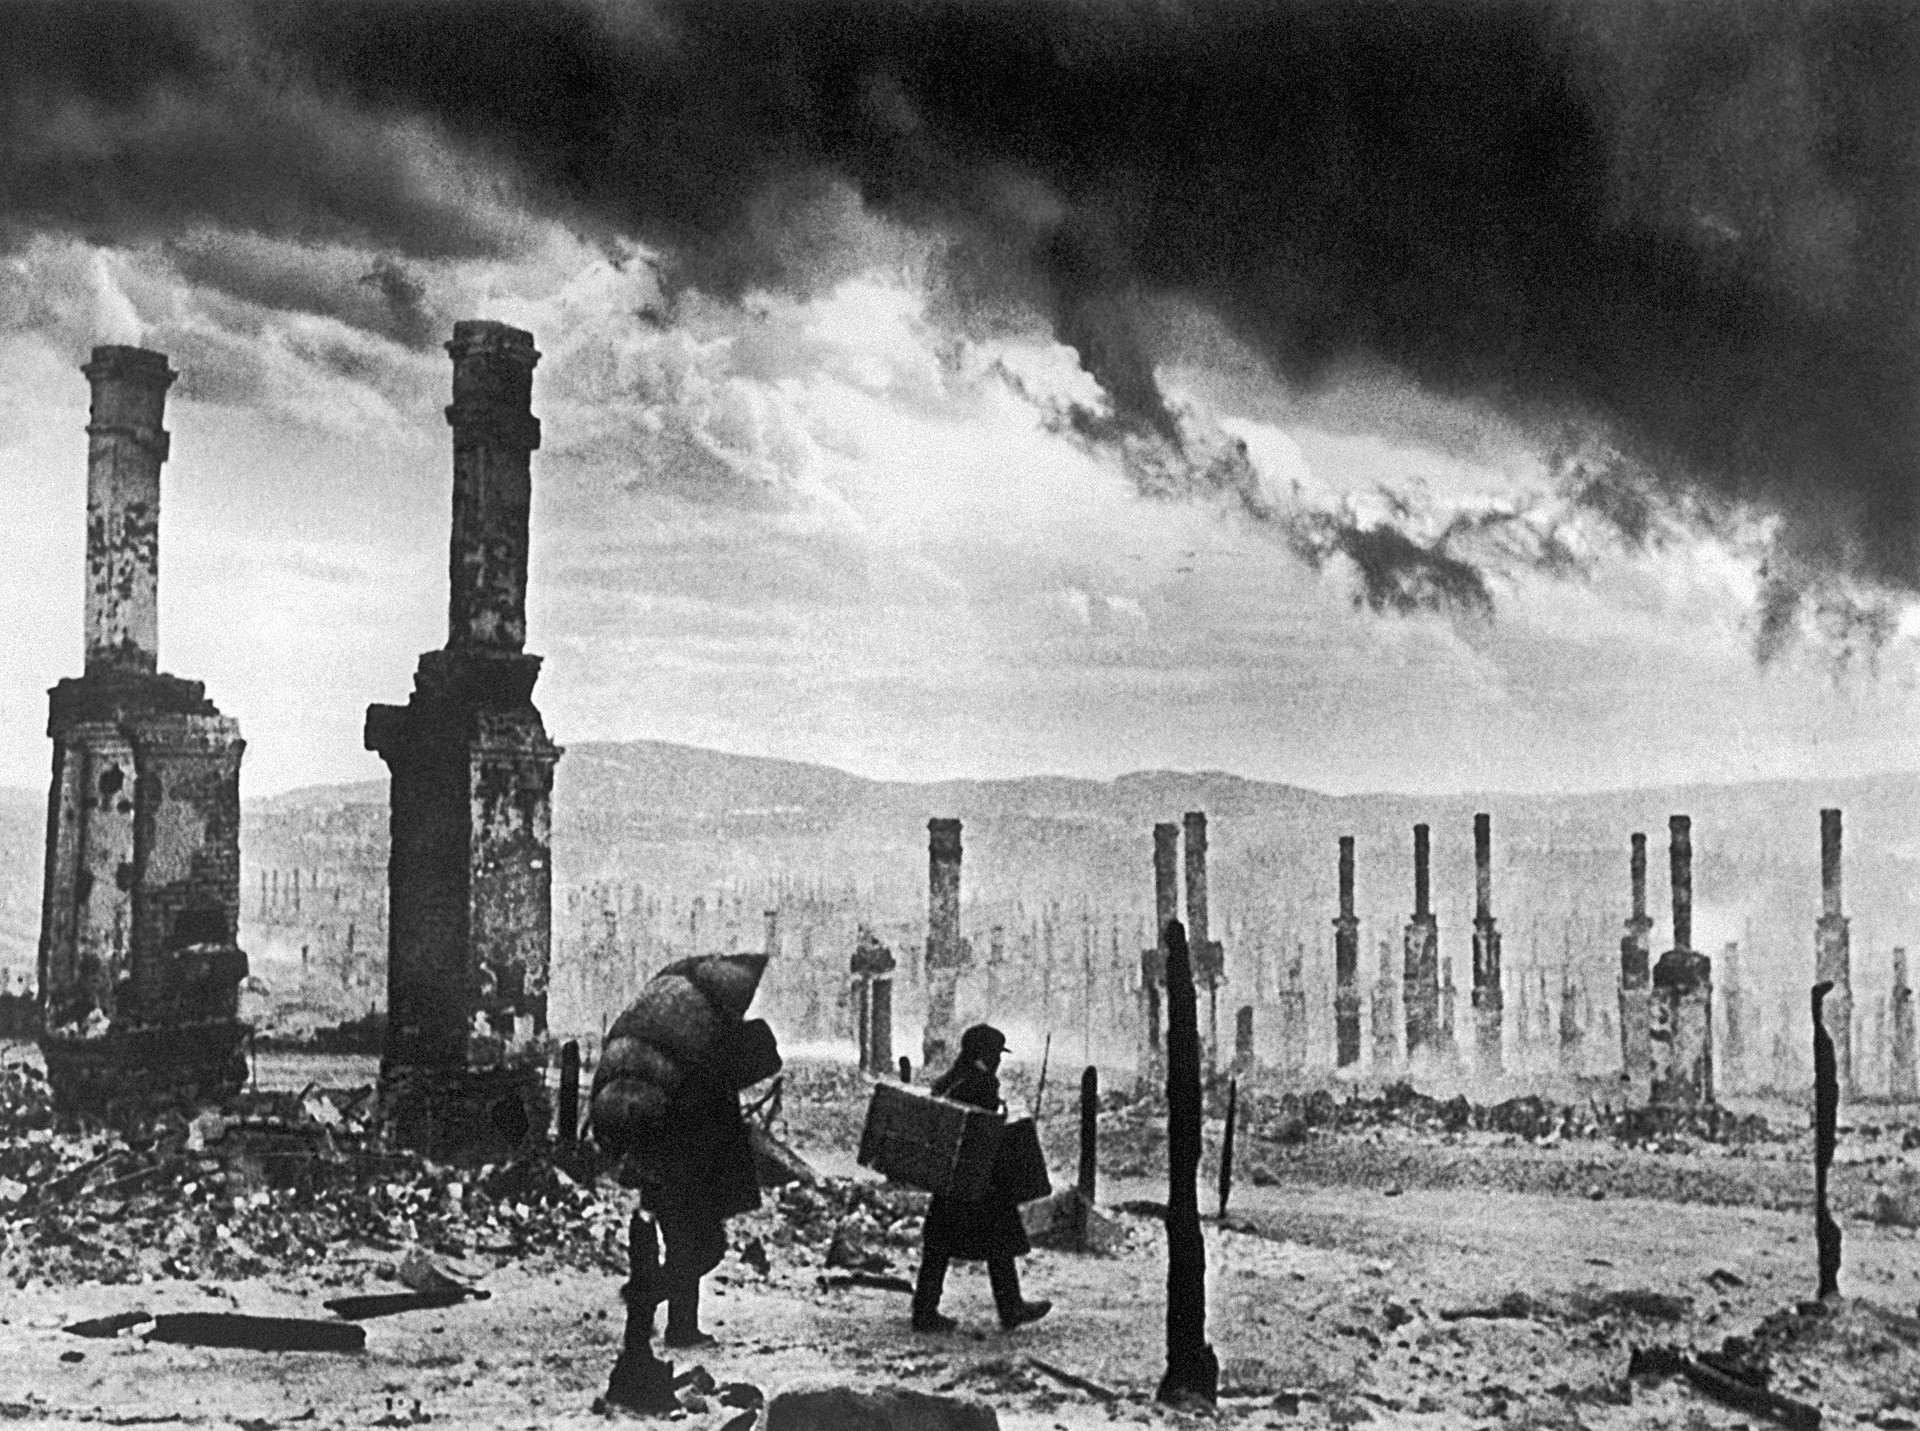 Ruins of Murmansk after the Second World War